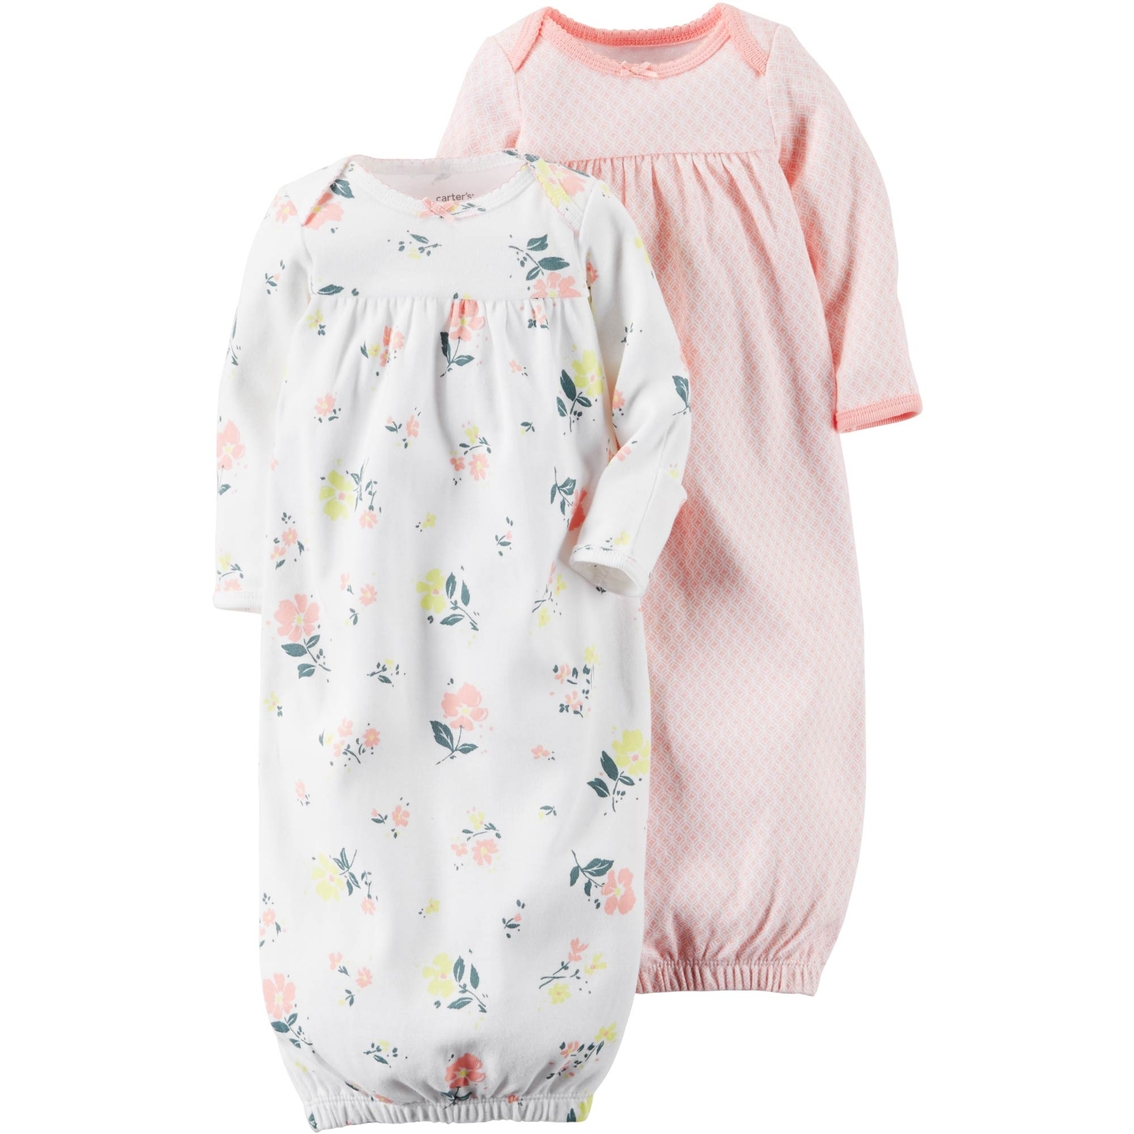 Carter\'s Preemie Girls Sleeper Gowns 2 Pk. | Baby Girl 0-24 Months ...